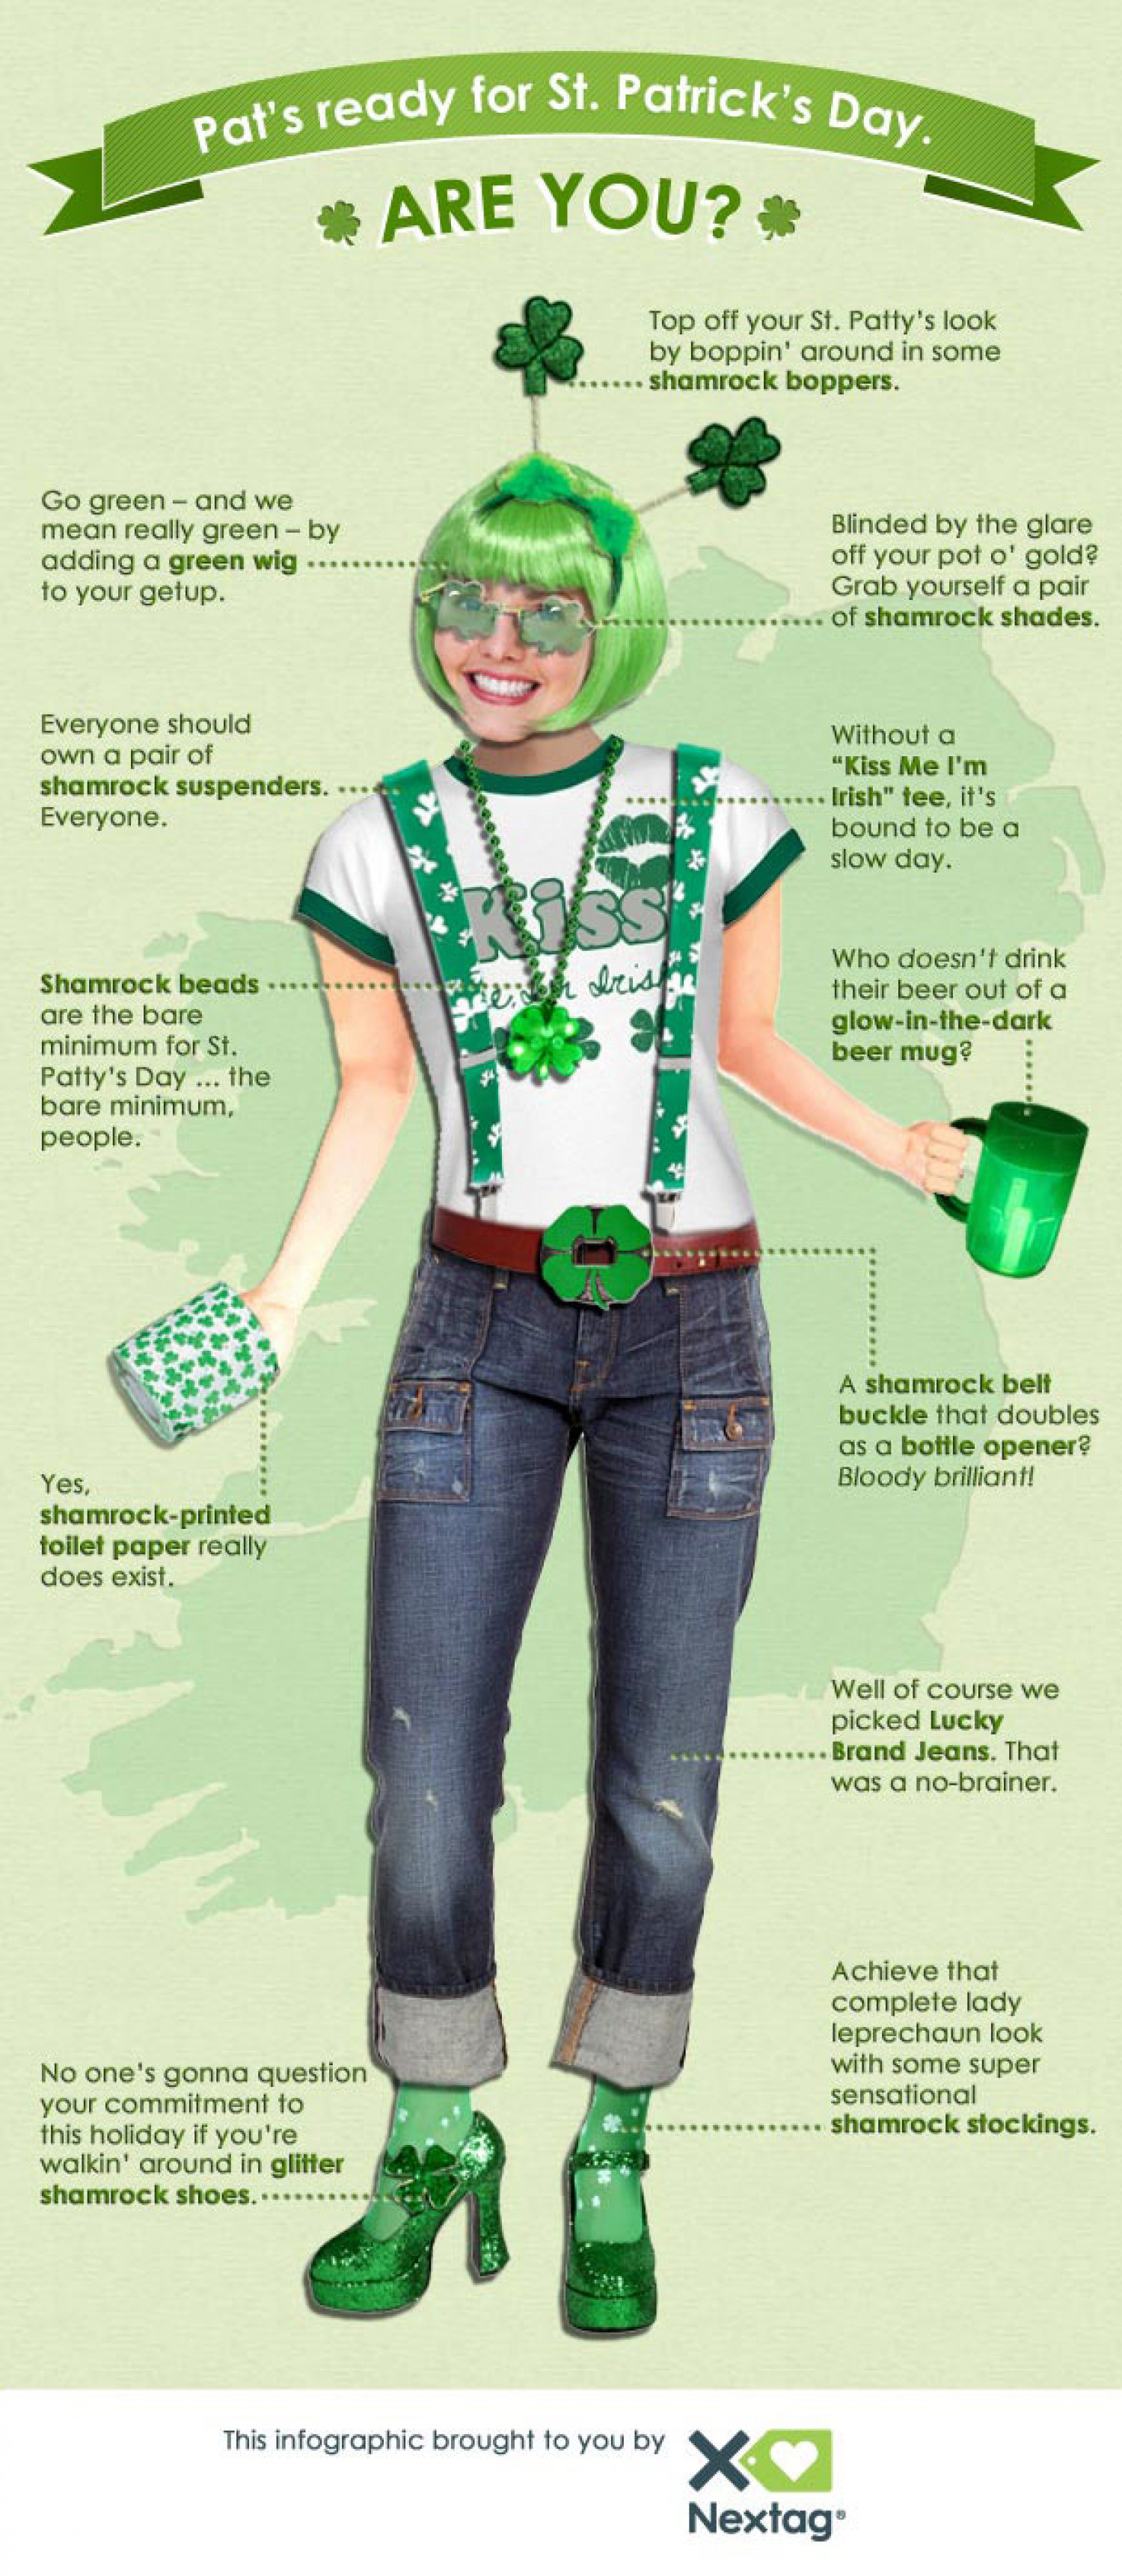 Celebrate St. Patrick's Day with Nextag Infographic